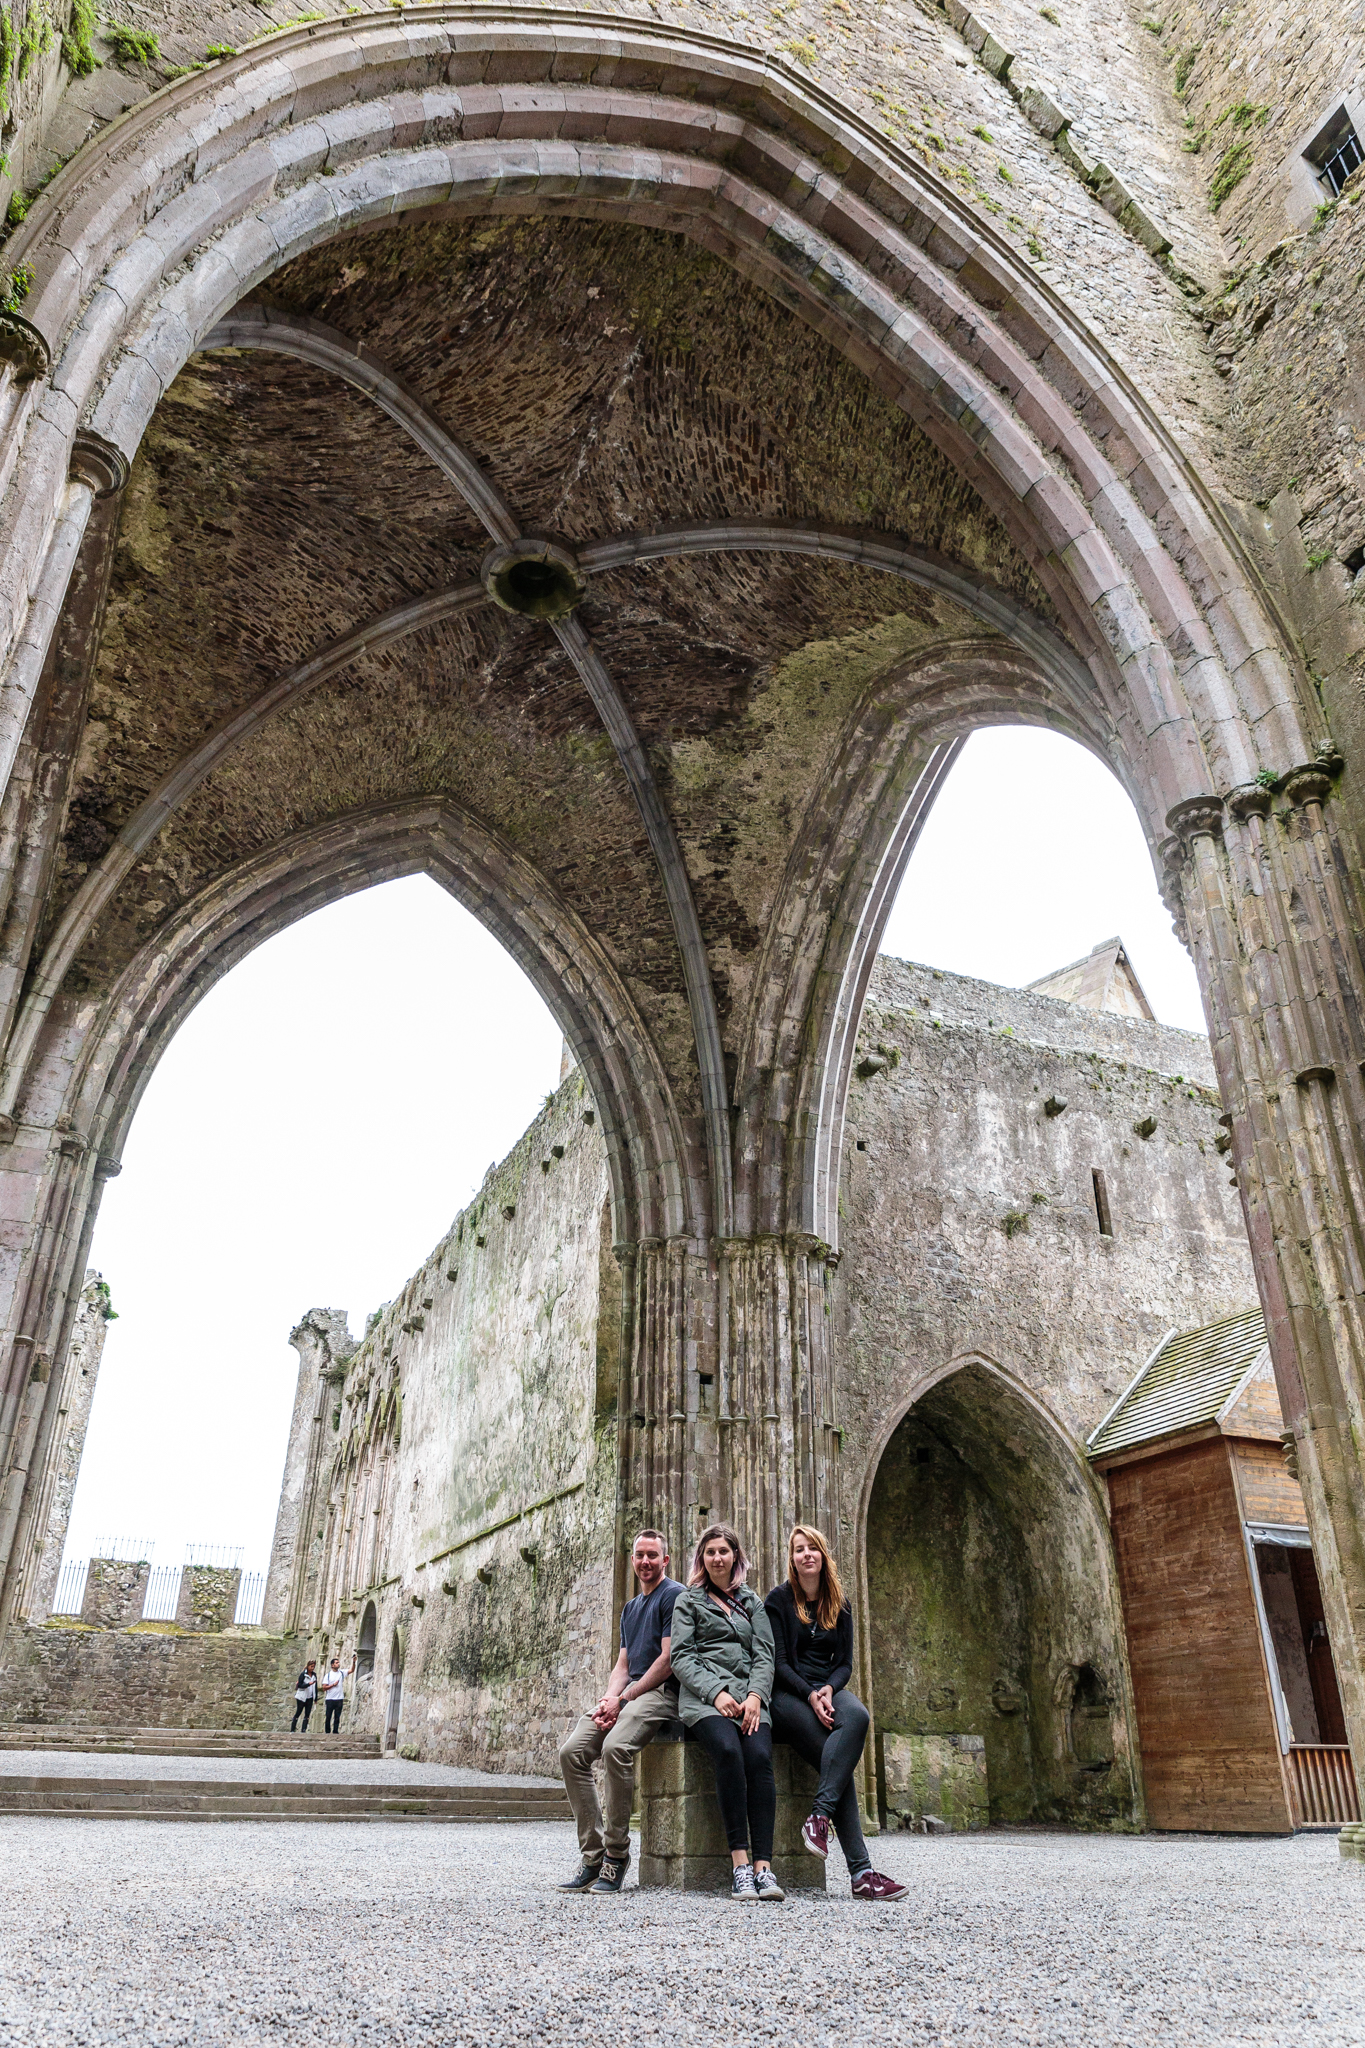 Inside the Rock of Cashel